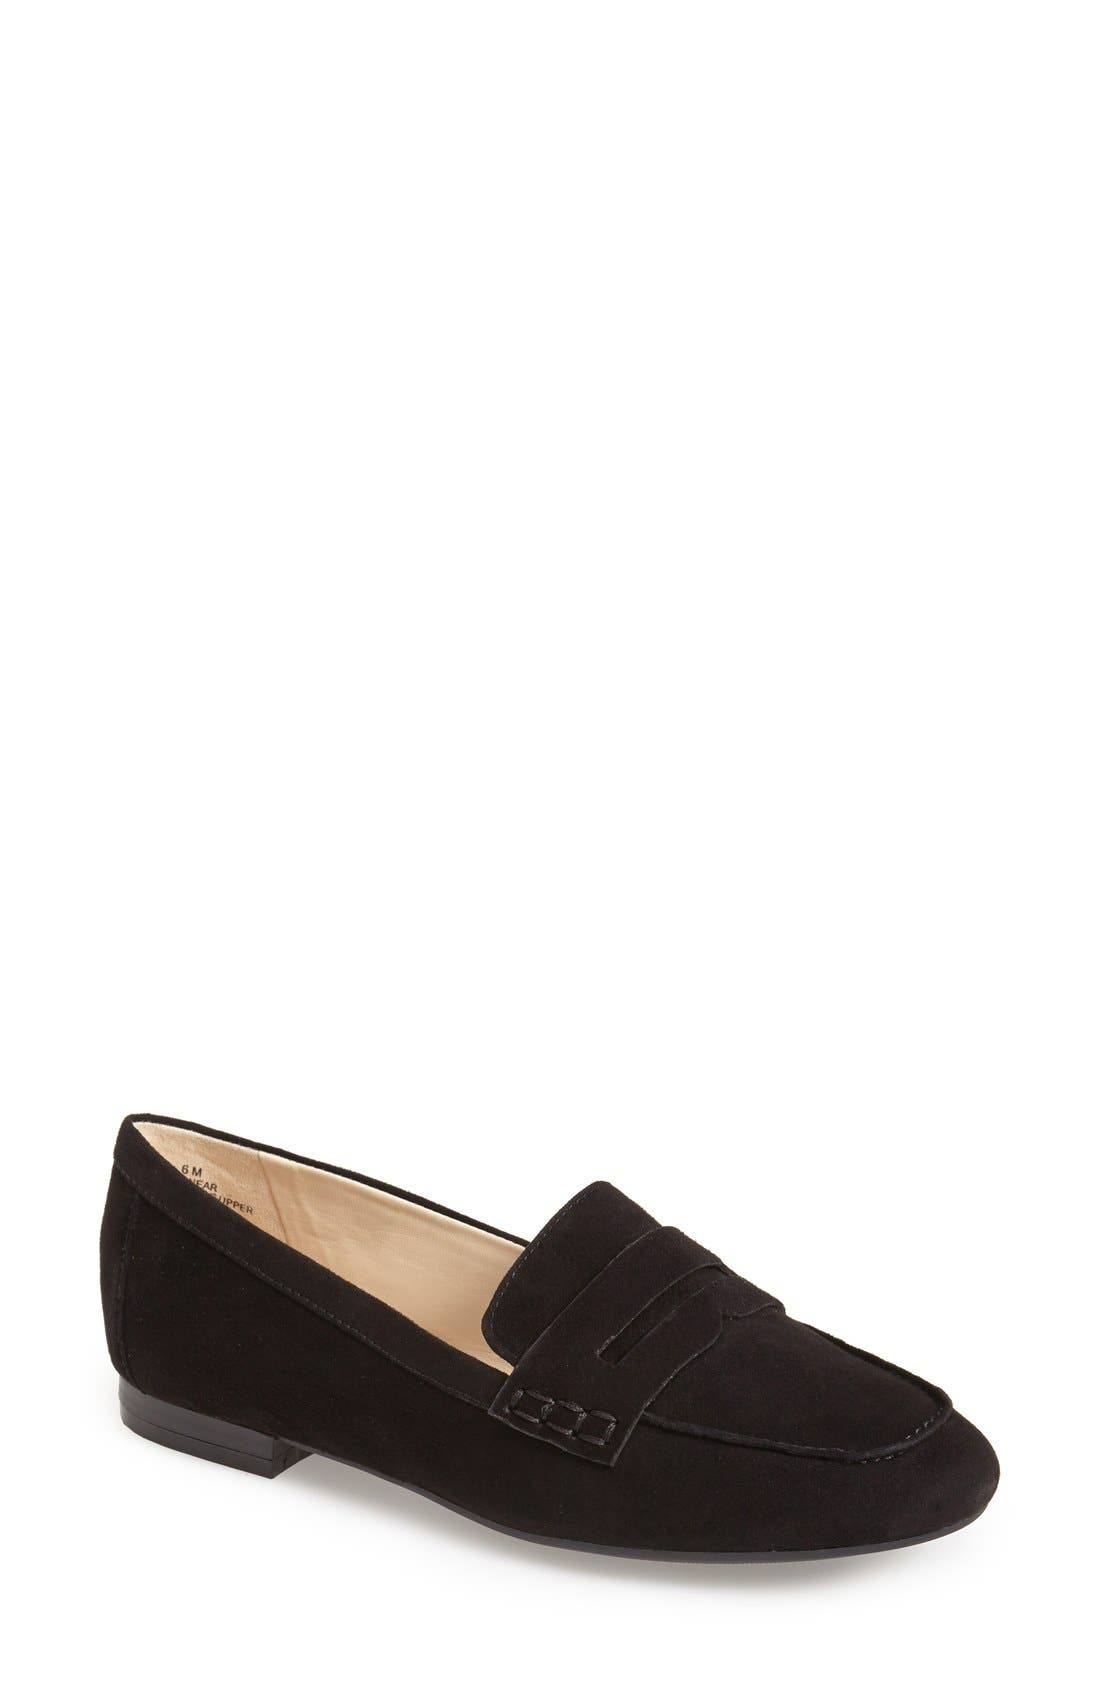 Alternate Image 1 Selected - Nine West 'Linear' Suede Penny Loafer (Women)